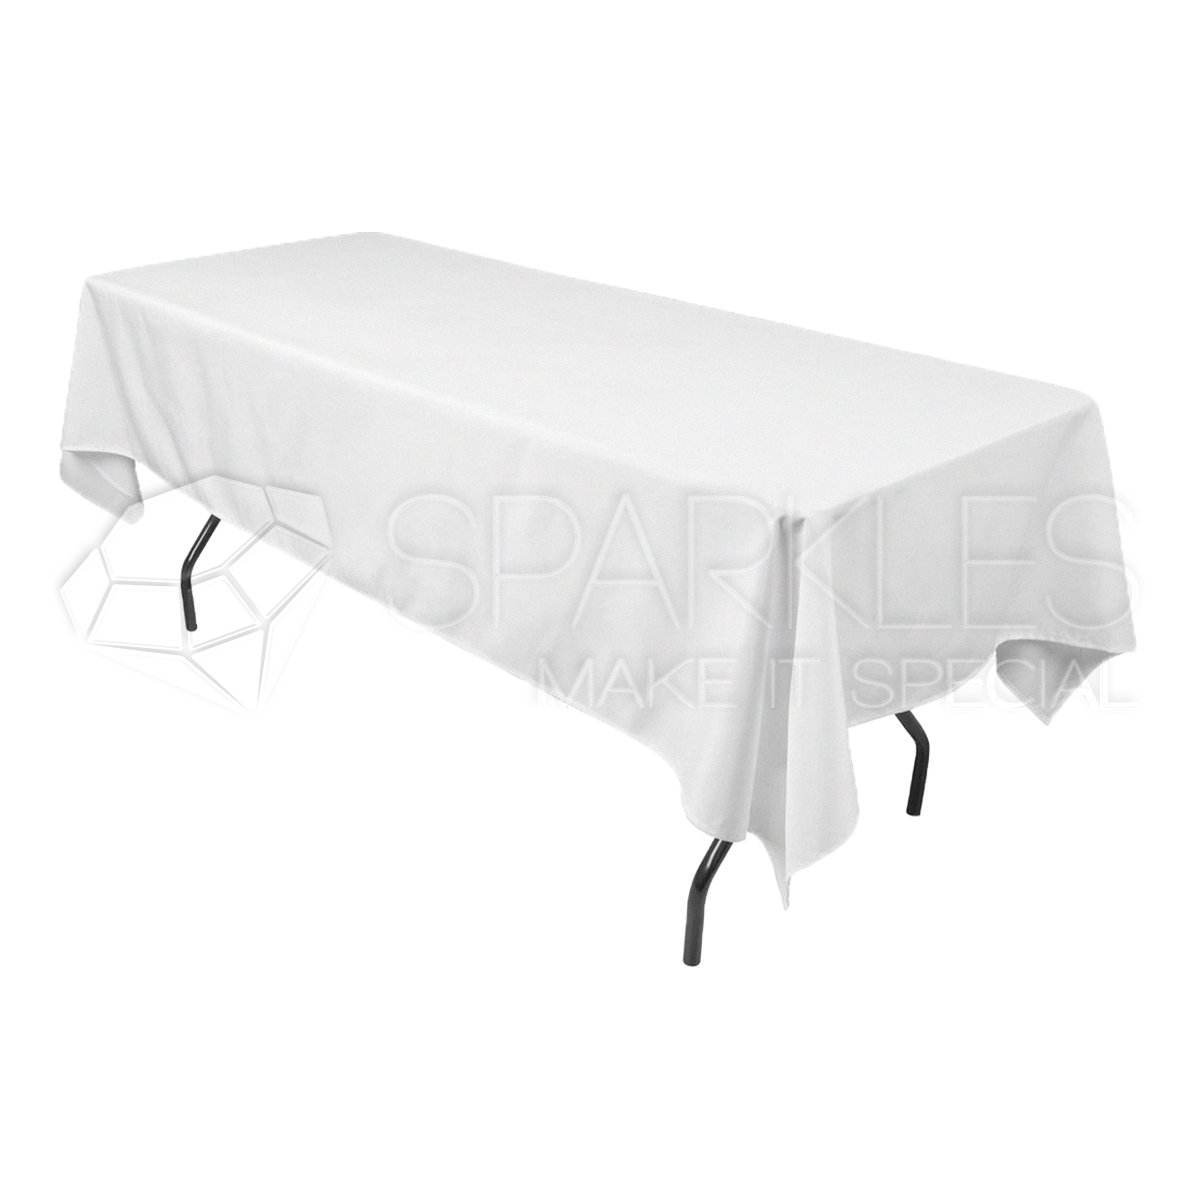 Sparkles Make It Special 10-pcs 60'' x 102'' Inch Rectangular Polyester Cloth Fabric Linen Tablecloth - Wedding Reception Restaurant Banquet Party - Machine Washable - Choice of Color - White by Sparkles Make It Special